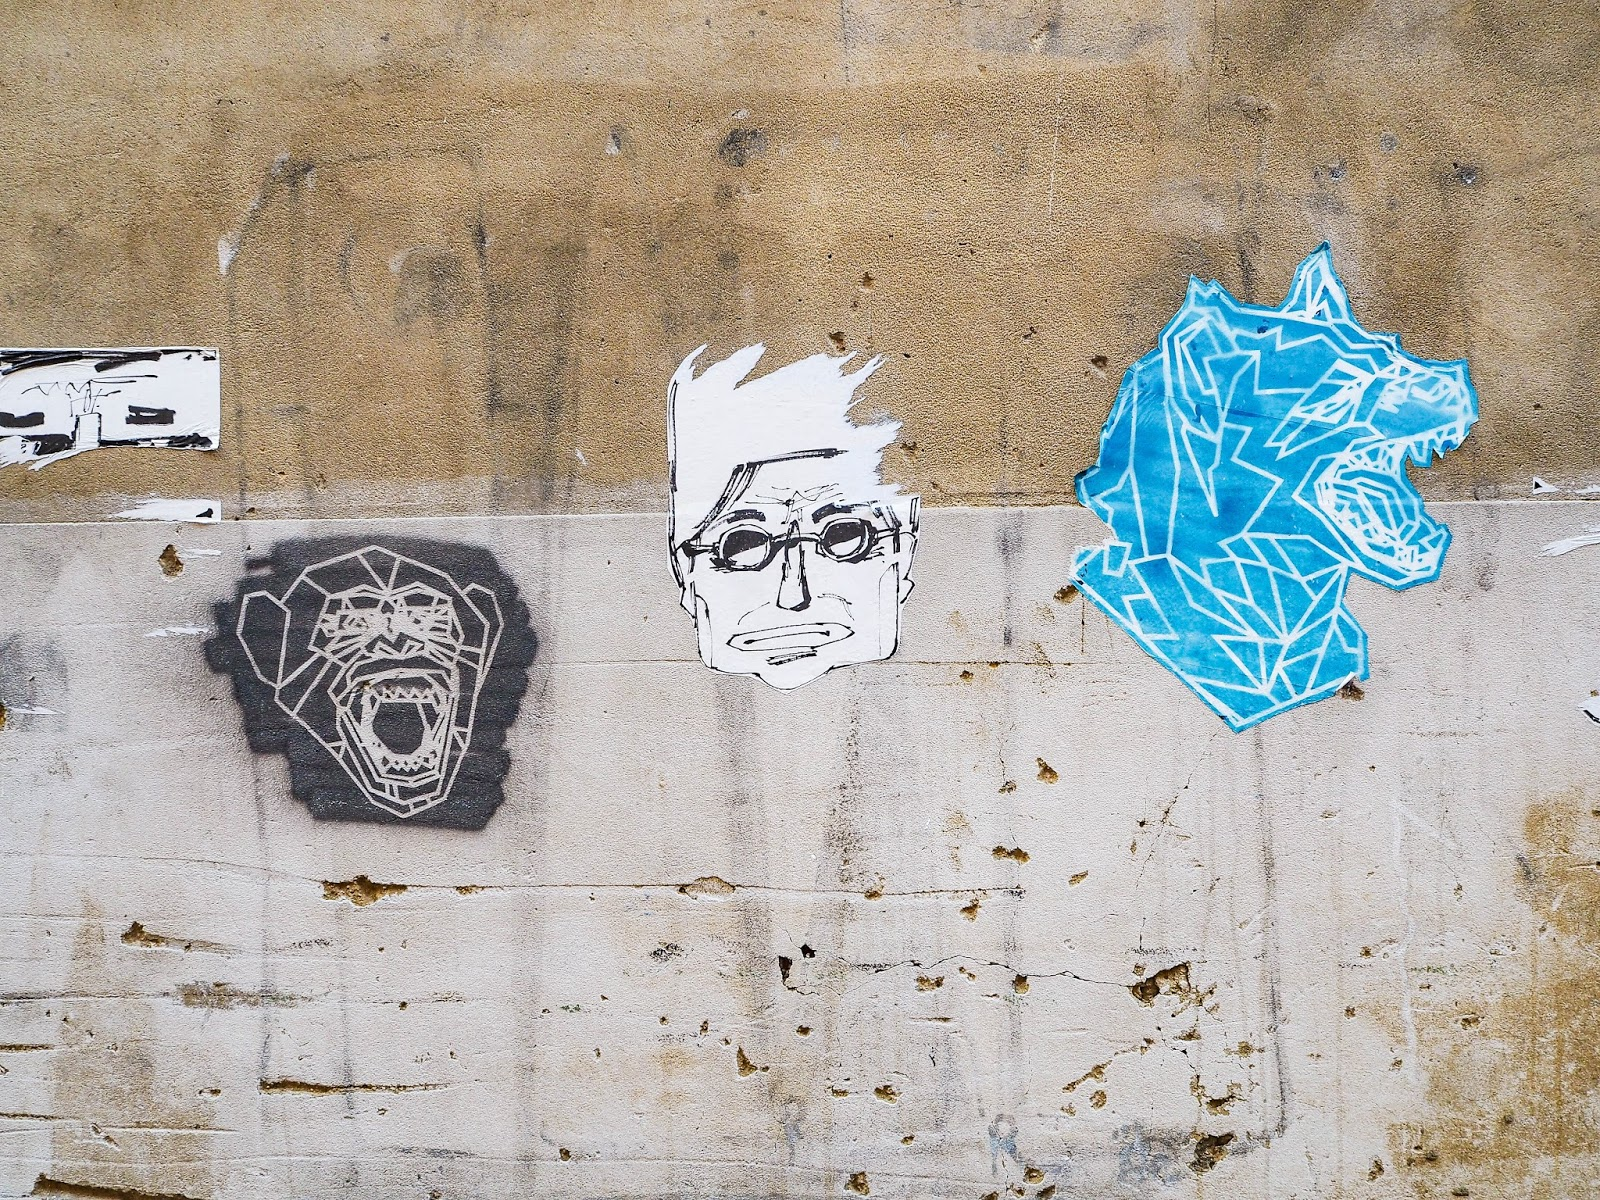 The Amazing Street Art of Melbourne